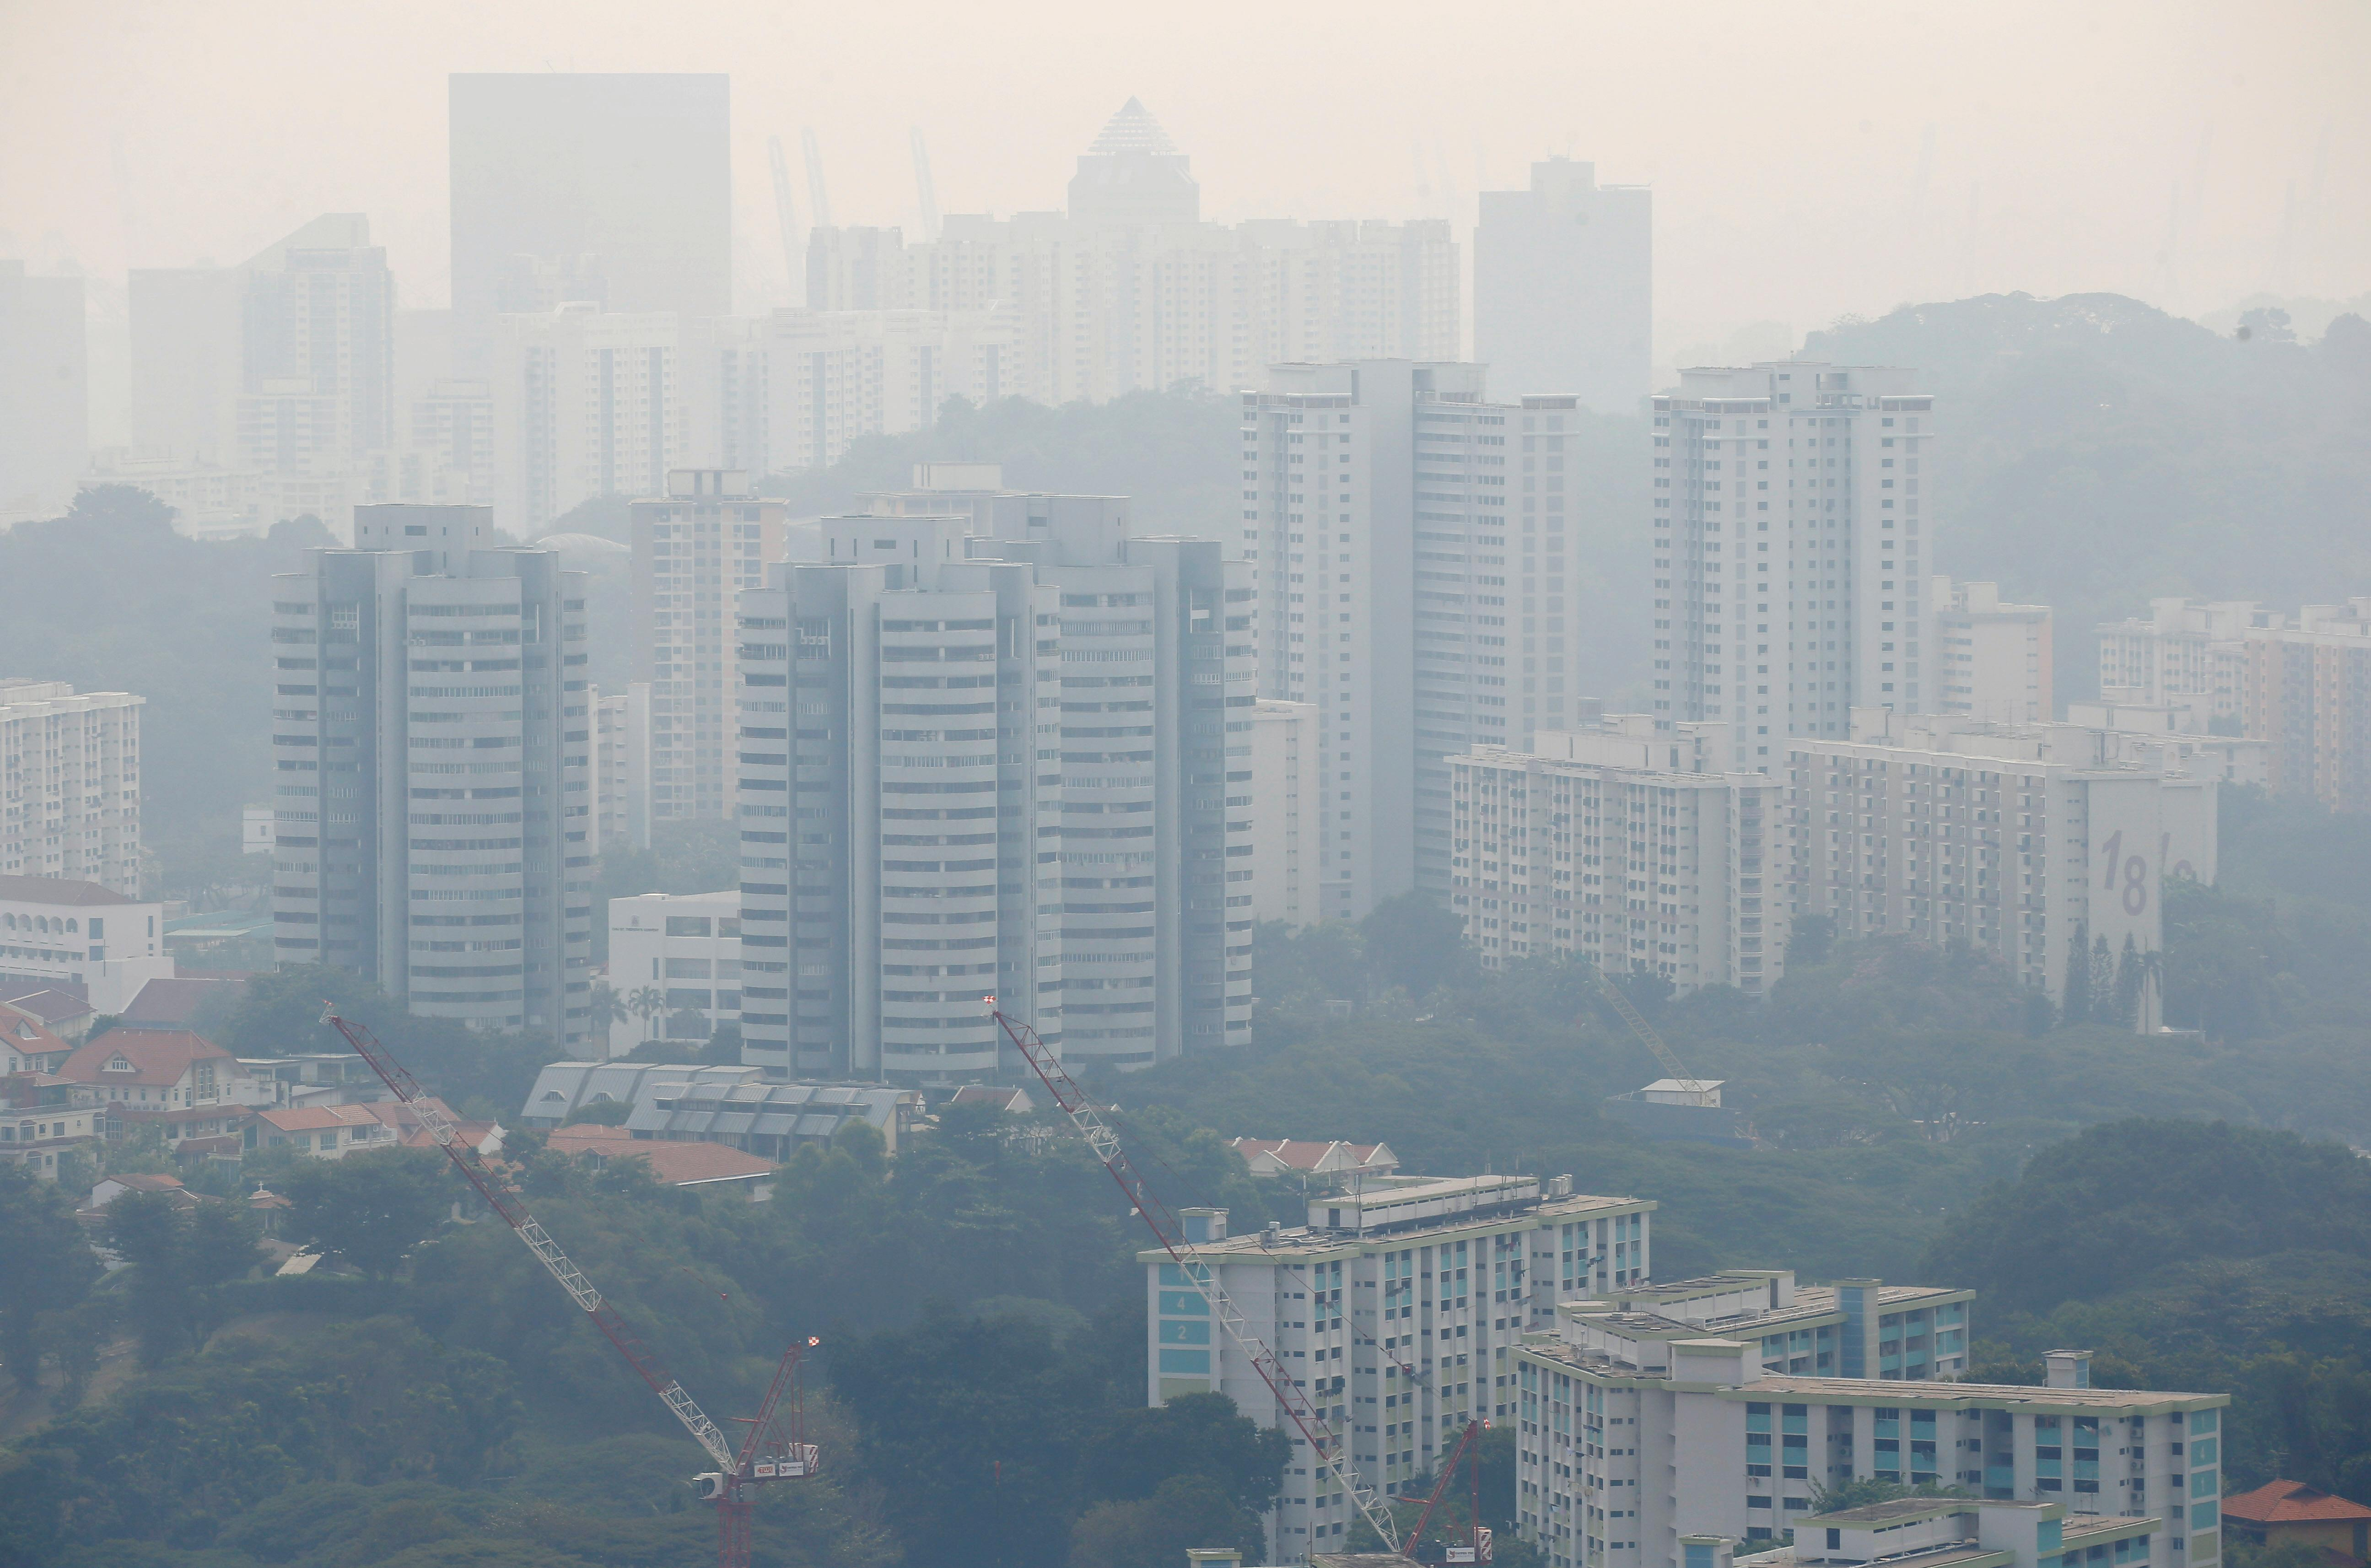 Singapore's air worsens to 'unhealthy' levels: Asia haze update